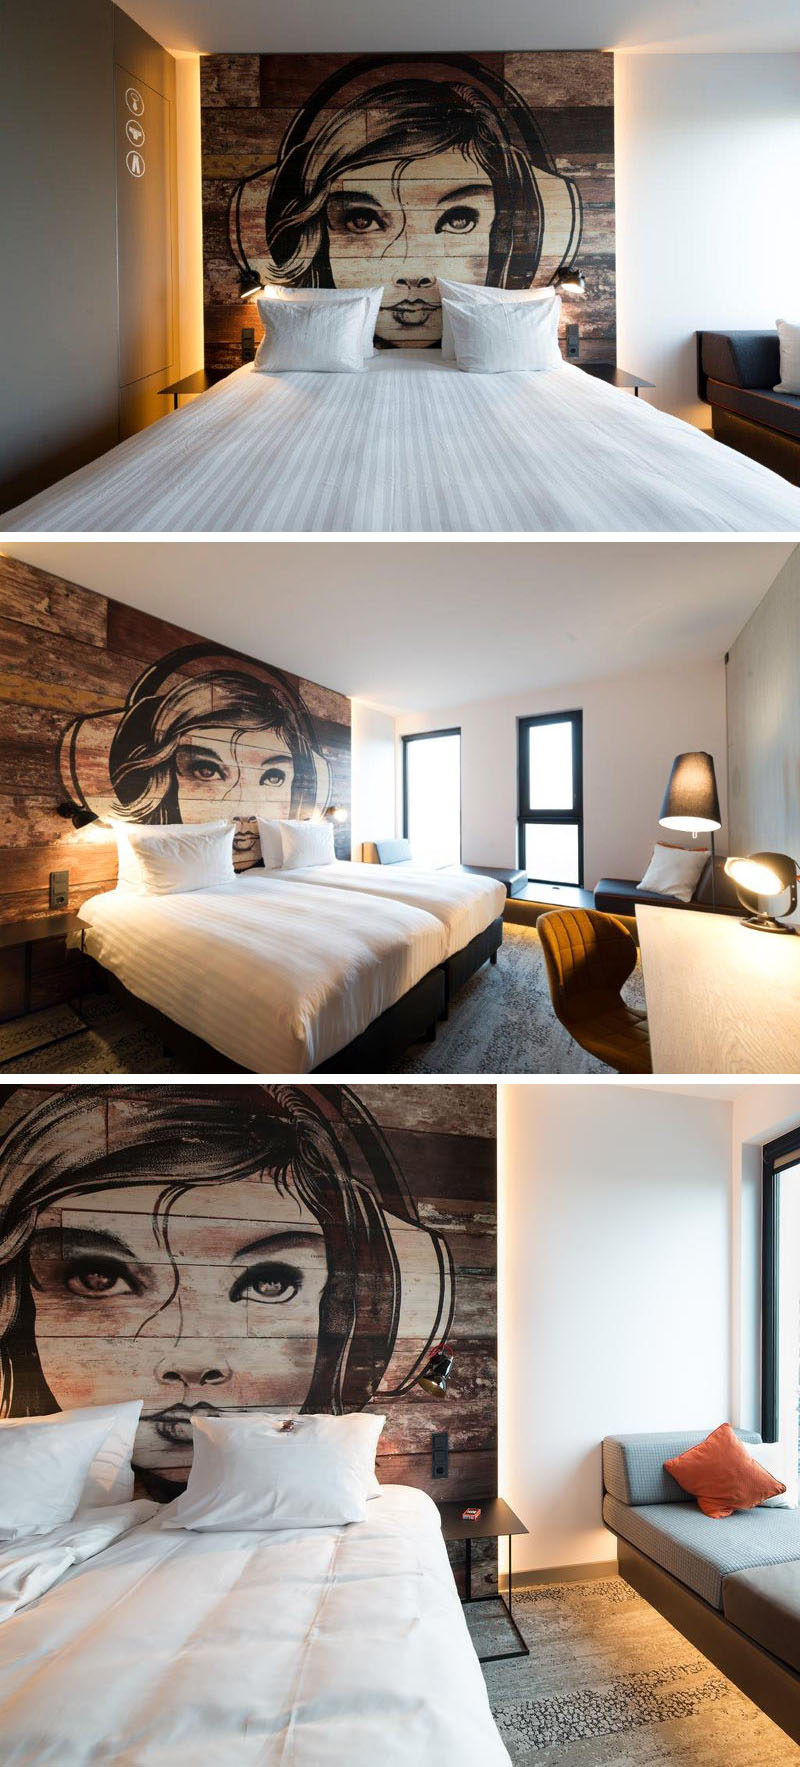 Headboard design idea mural painted on wood contemporist for Mural headboard